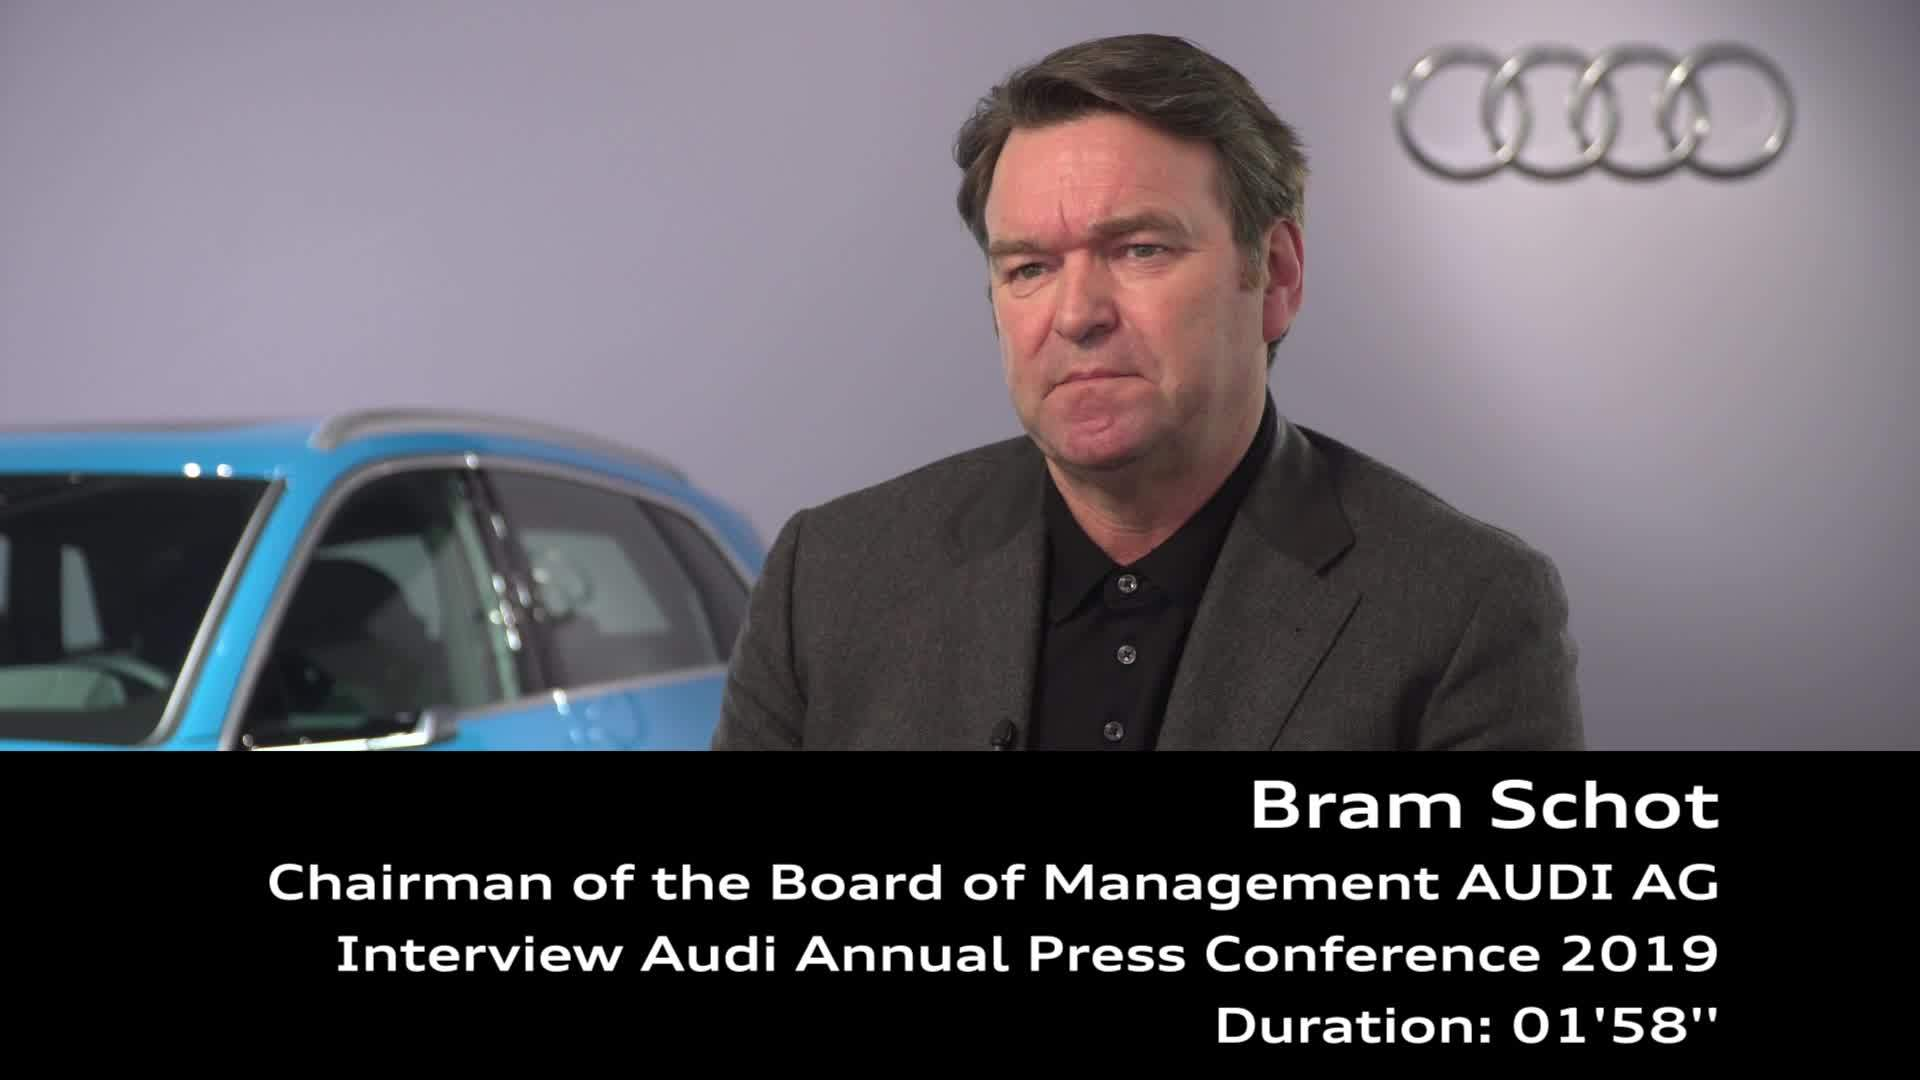 Audi Annual Press Conference 2019 Interview Bram Schot